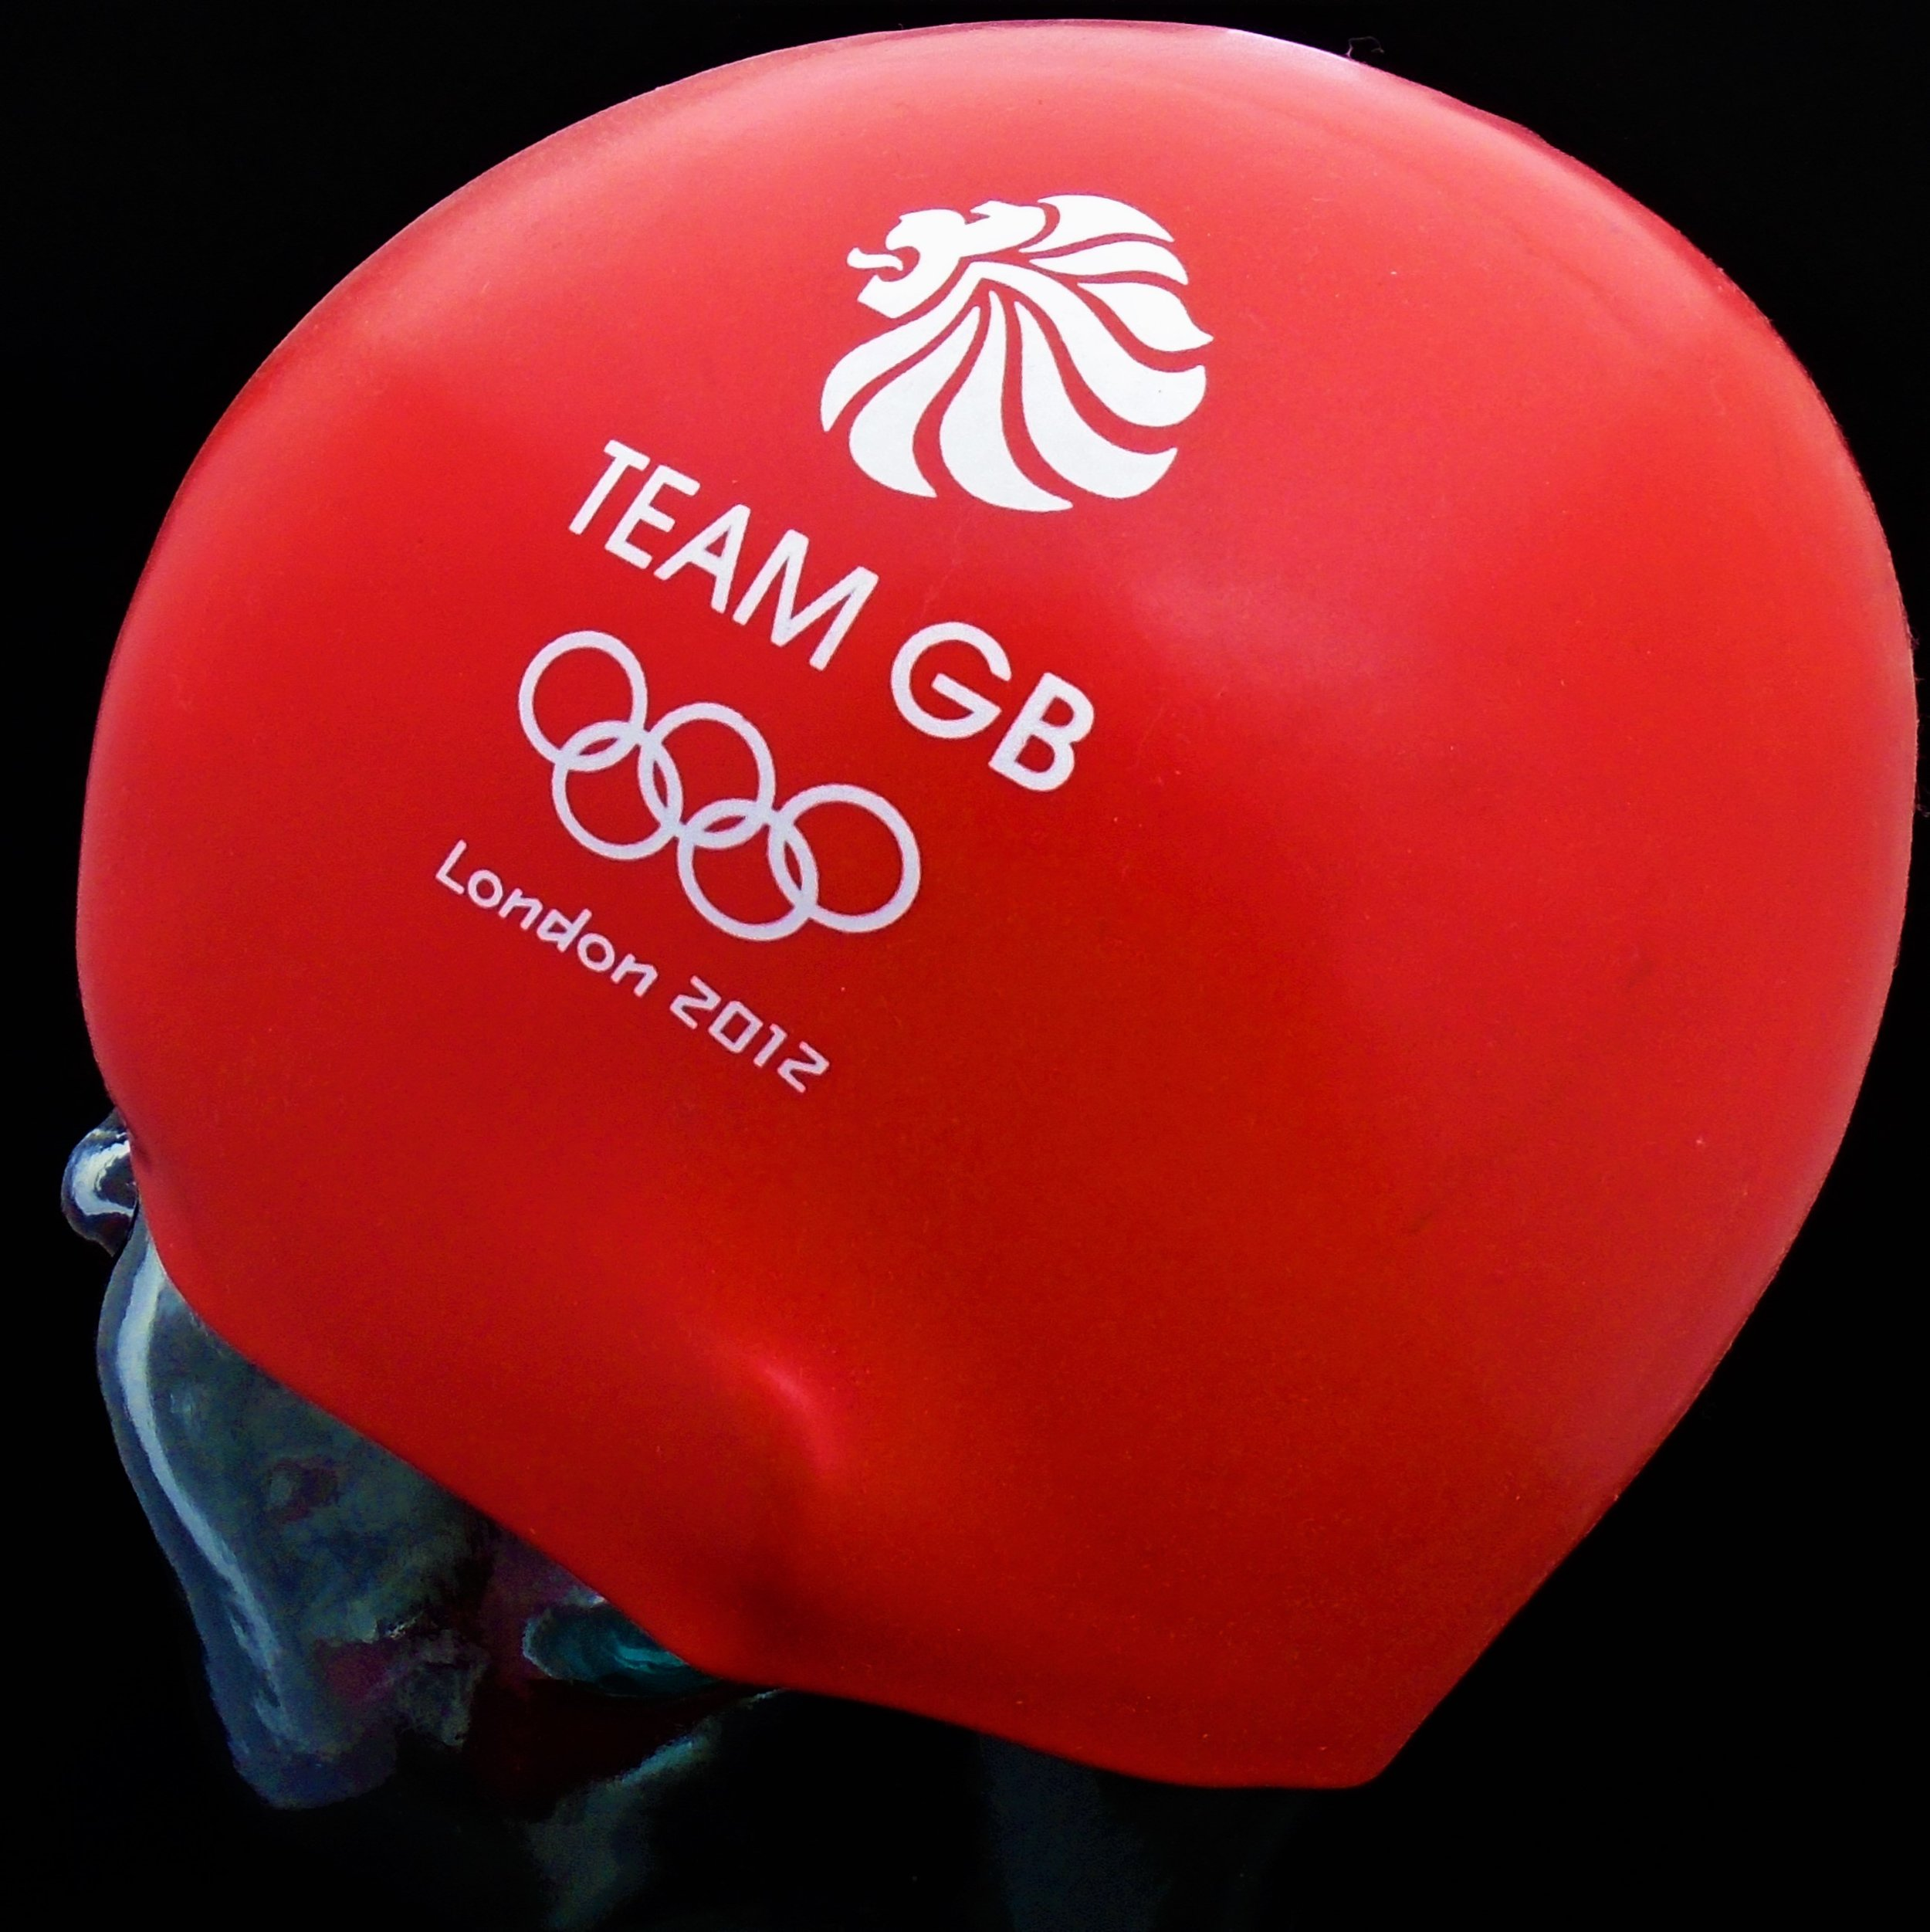 Team GB London 2012.jpg